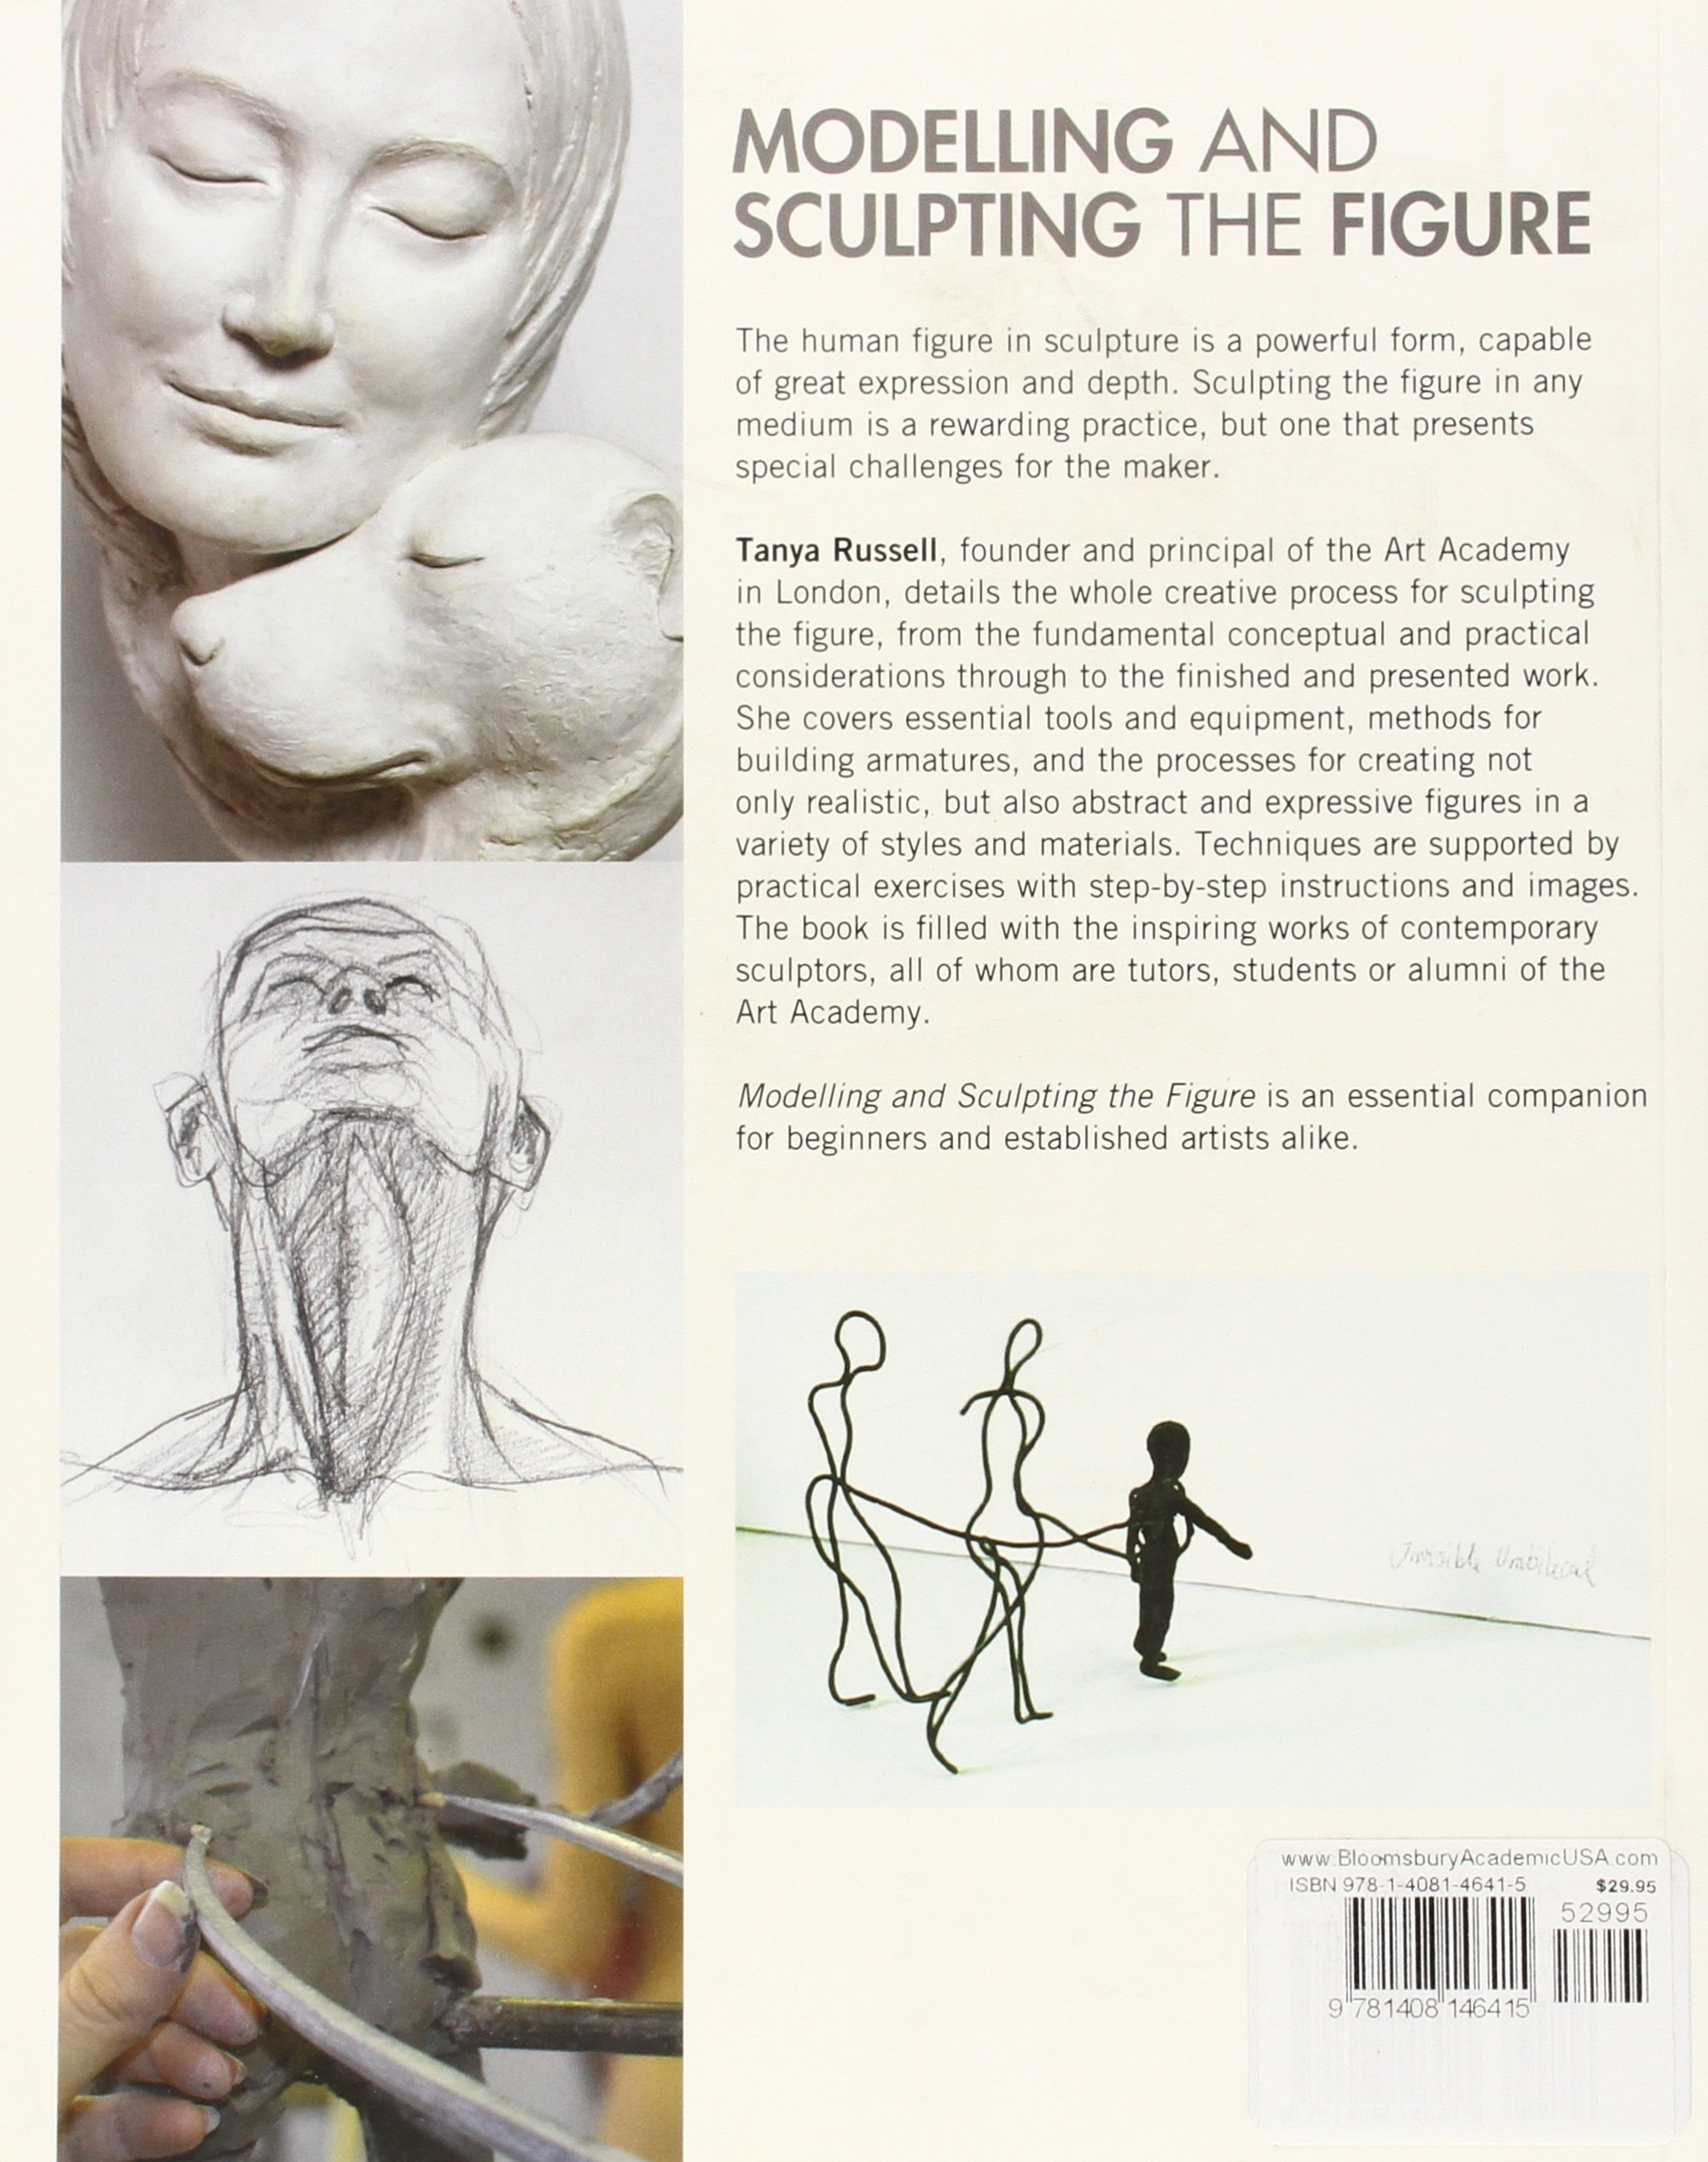 Modelling and Sculpting the Figure: Amazon.co.uk: Tanya Russell:  9781408146415: Books